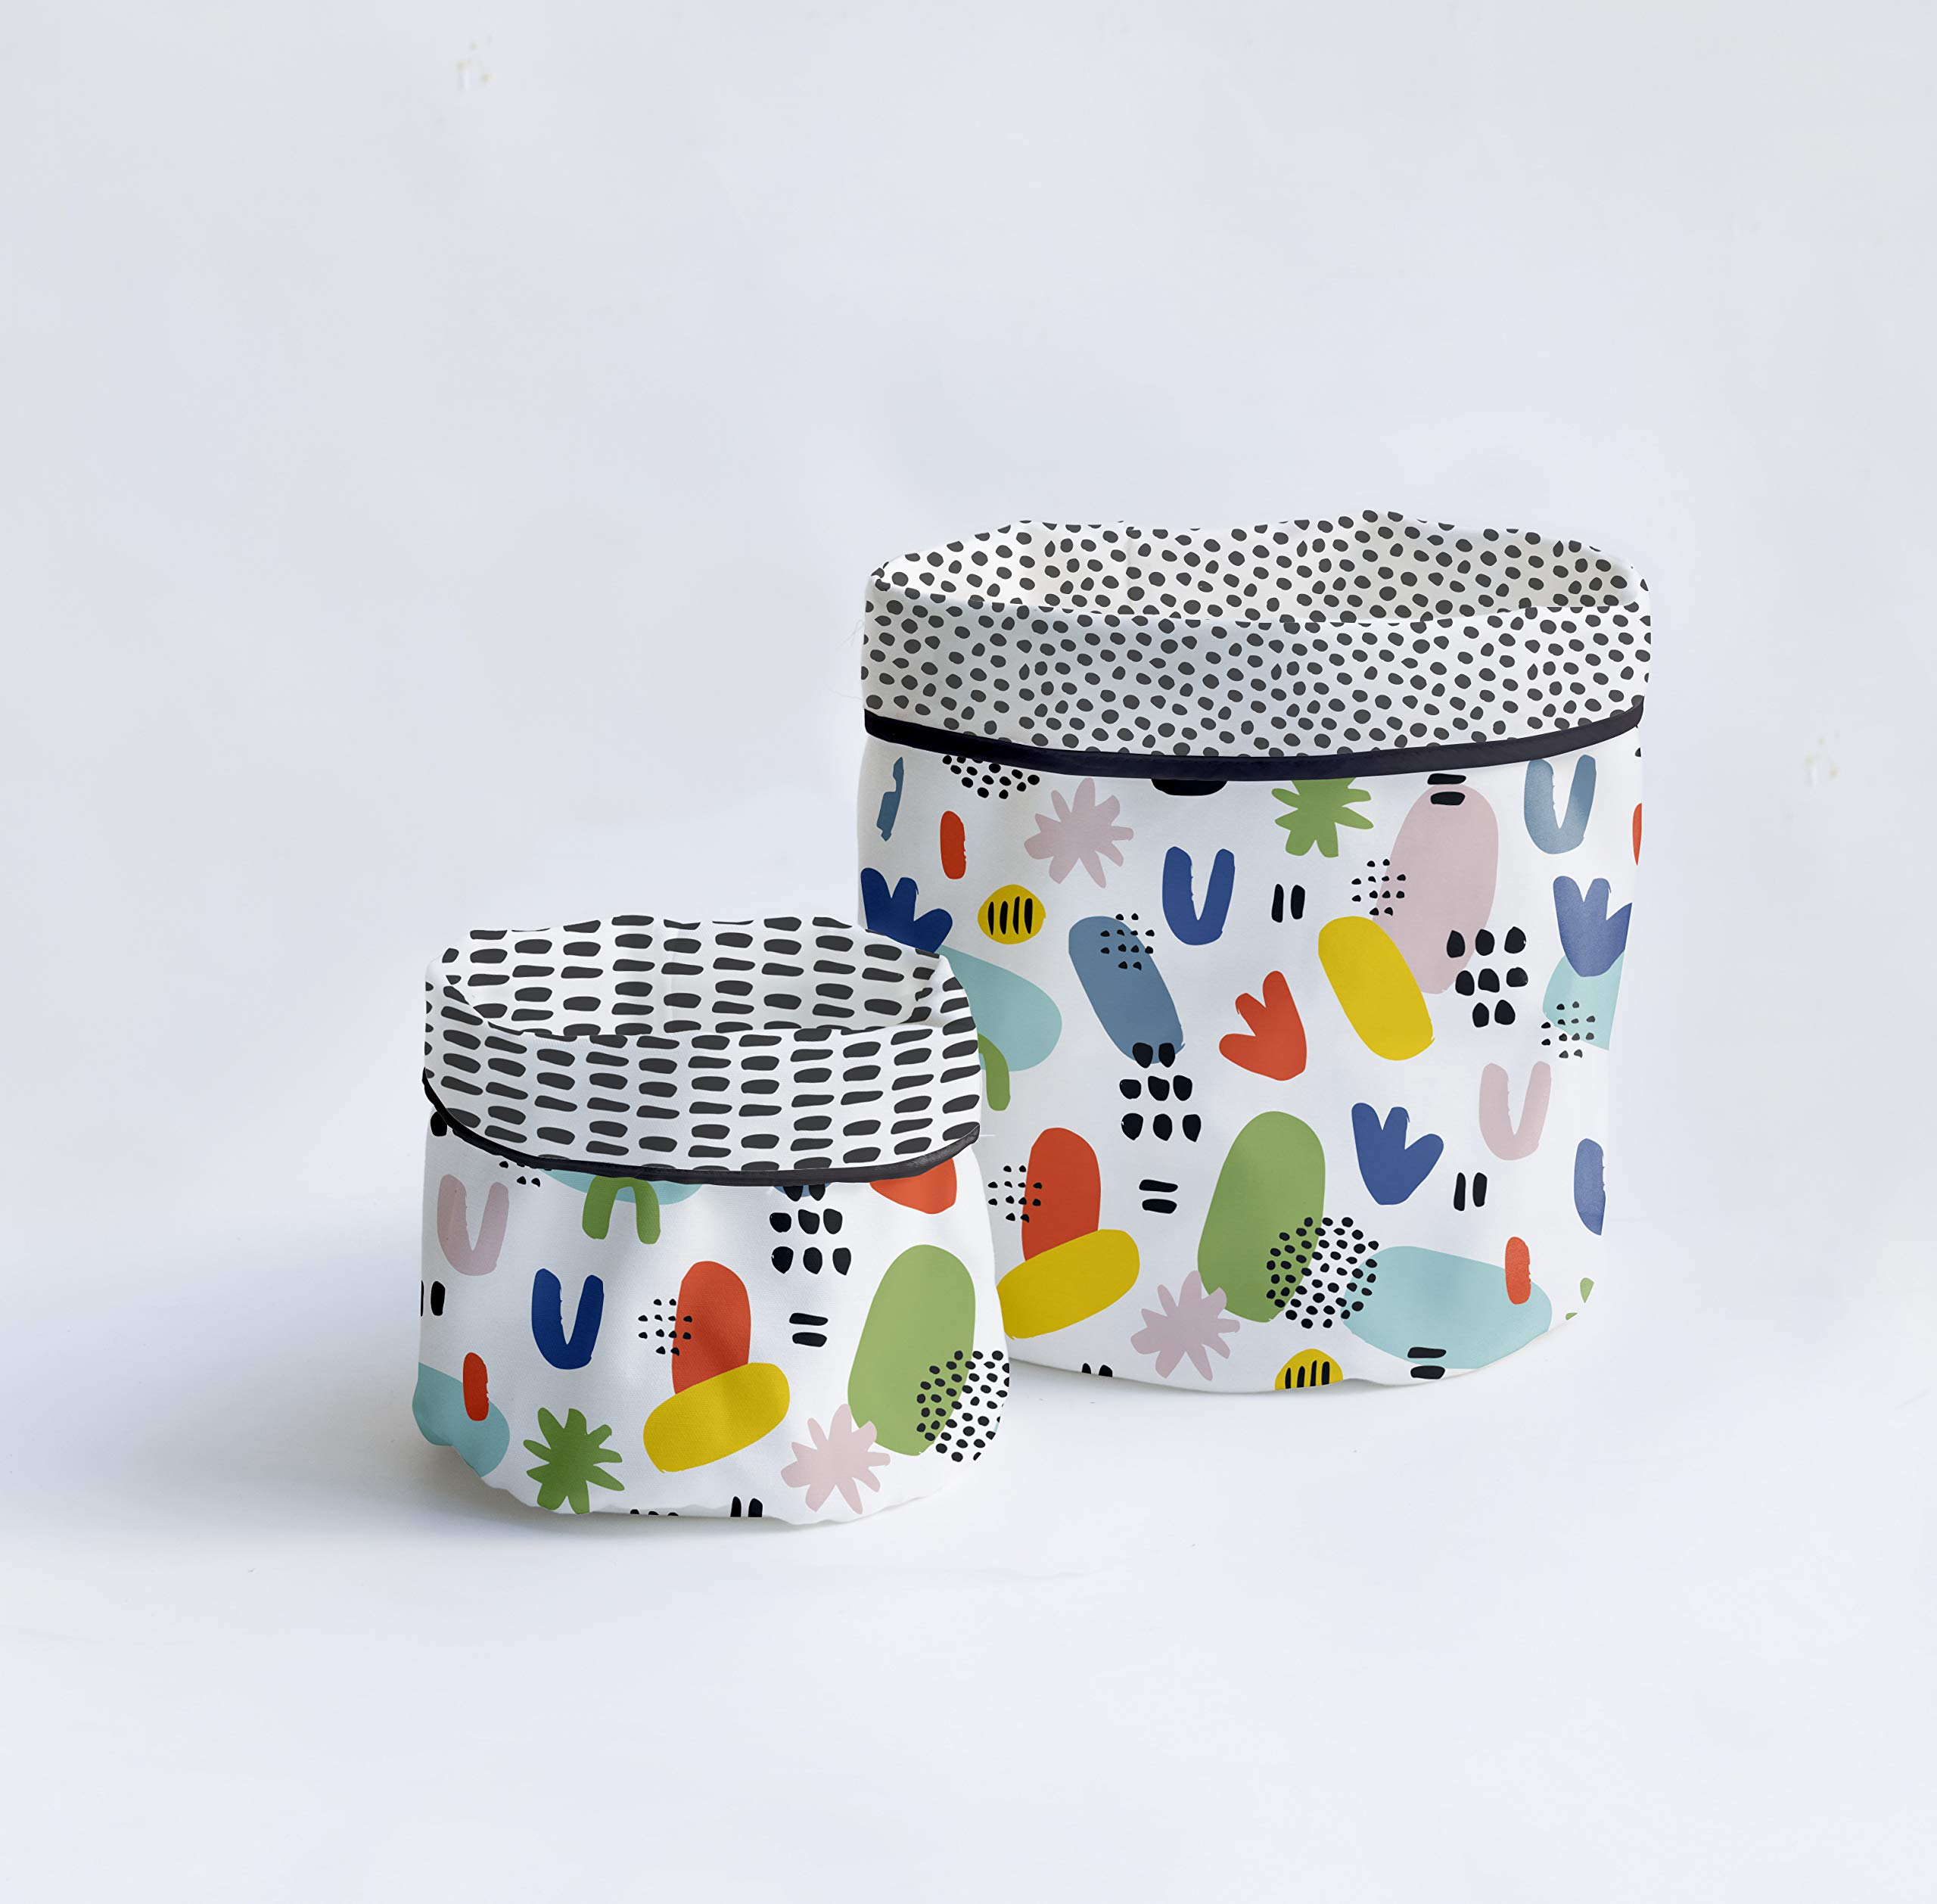 Dear Bestiario Naif Set Baskets, Teflonised Textile, Printed, 19.27 cm, 2